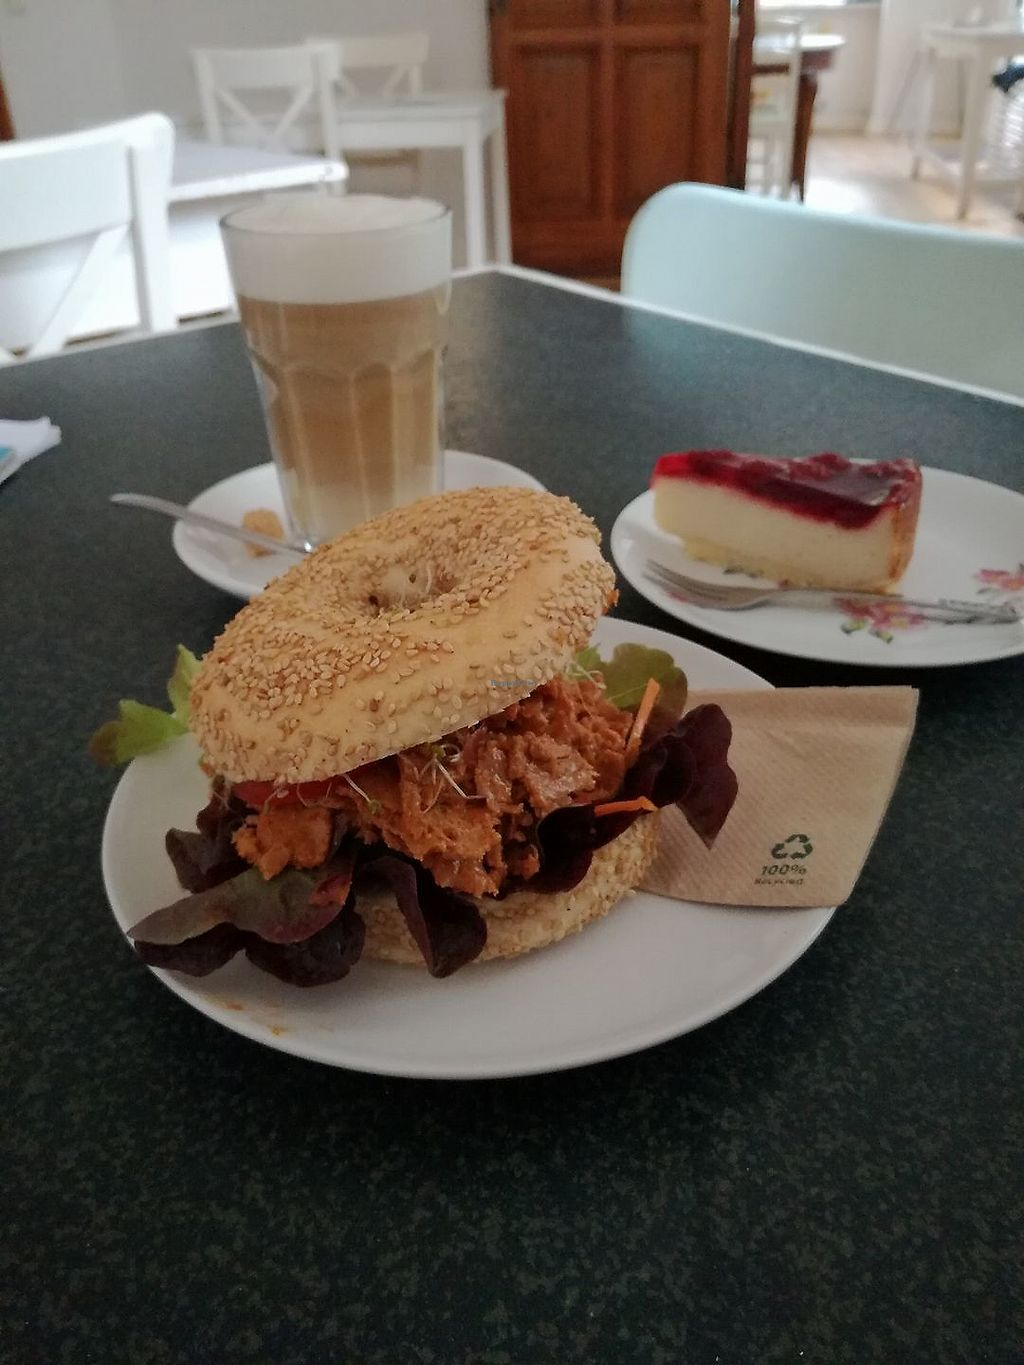 """Photo of Cafe Vux  by <a href=""""/members/profile/ZdeNka"""">ZdeNka</a> <br/>Seitan bagel, raspberry cheesecake and a soy latte (I'm not sure anymore:) <br/> September 10, 2017  - <a href='/contact/abuse/image/19181/302858'>Report</a>"""